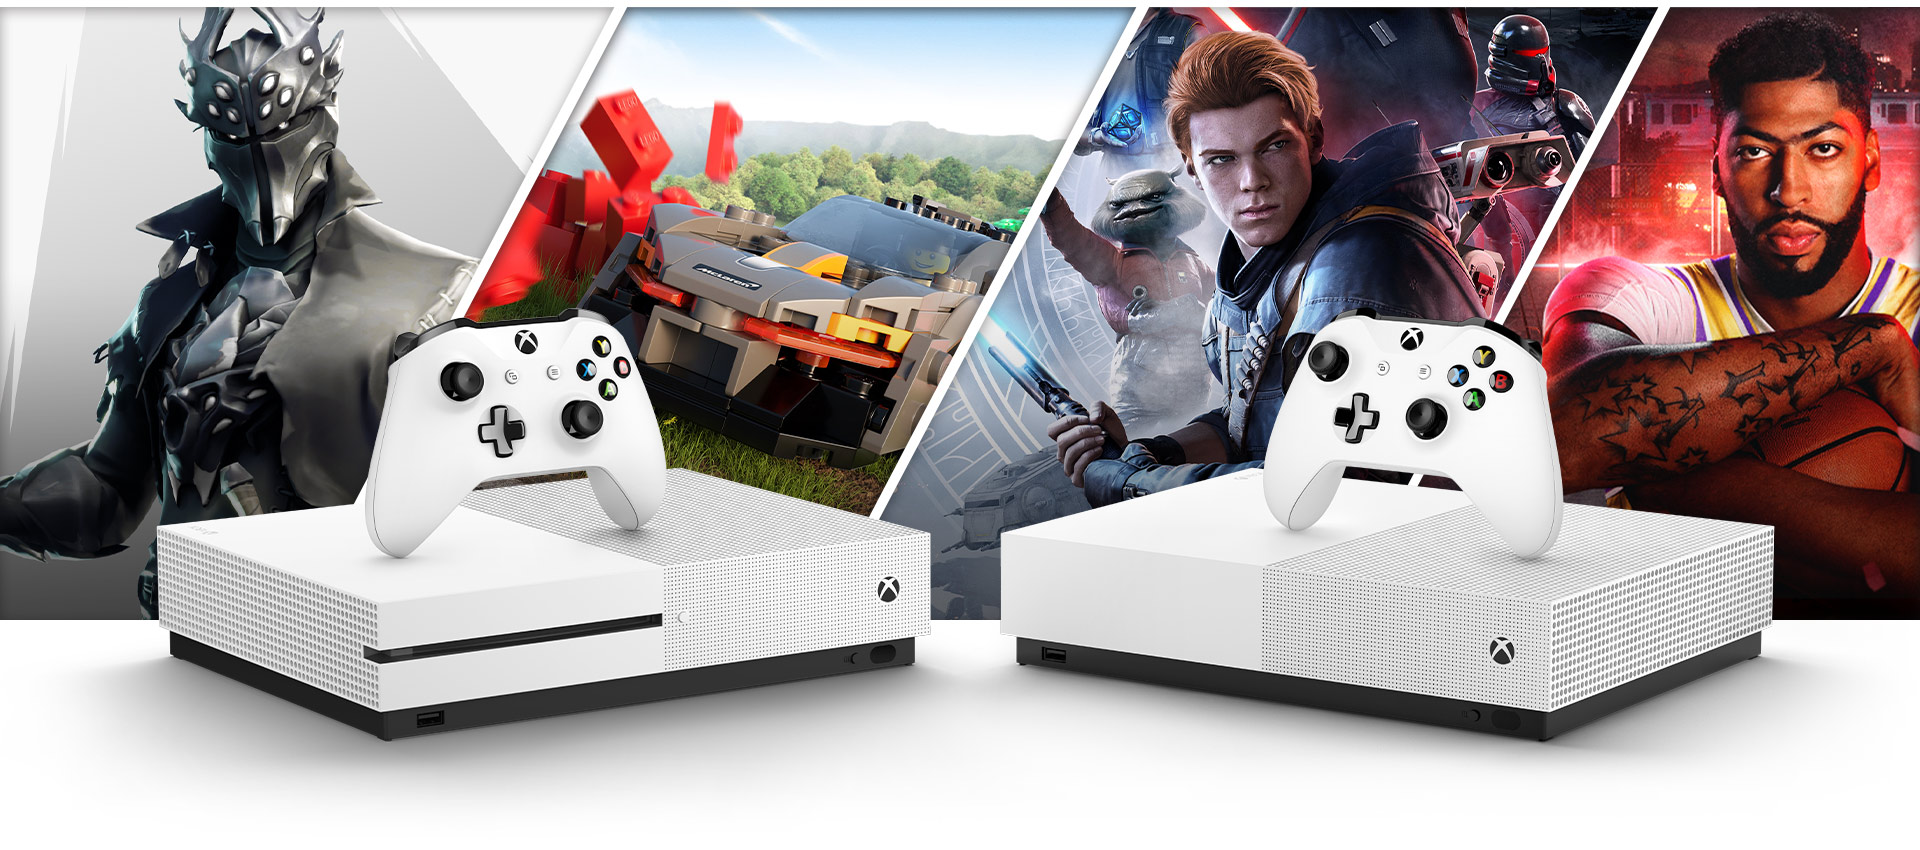 Fortnite, Forza Horizon 4, Star Wars Jedi Fallen en NBA 2K20-afbeeldingen achter een Xbox One S en Xbox One S All Digital Edition